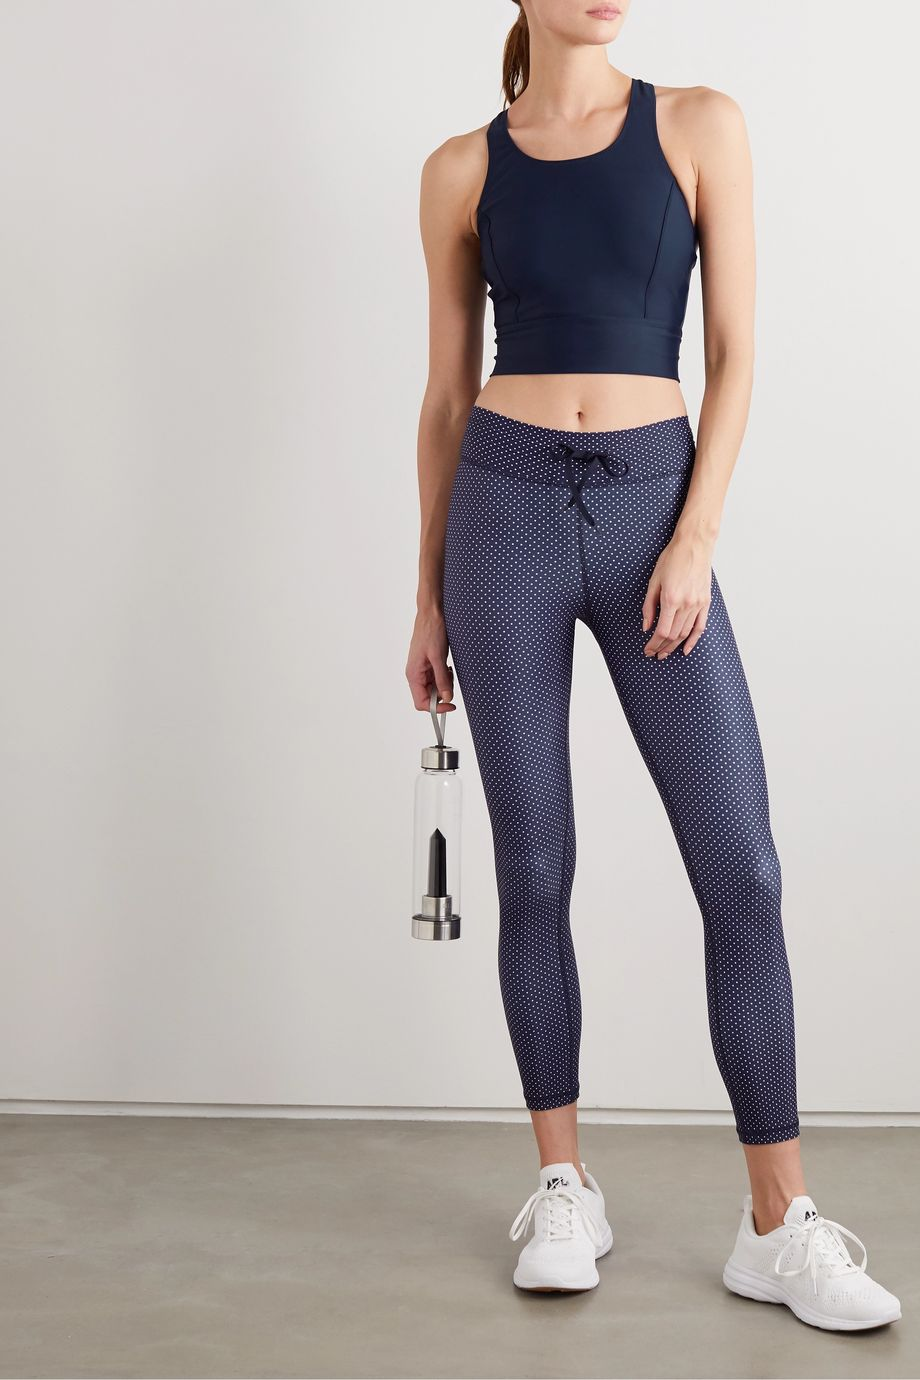 The Upside Amy cropped stretch top